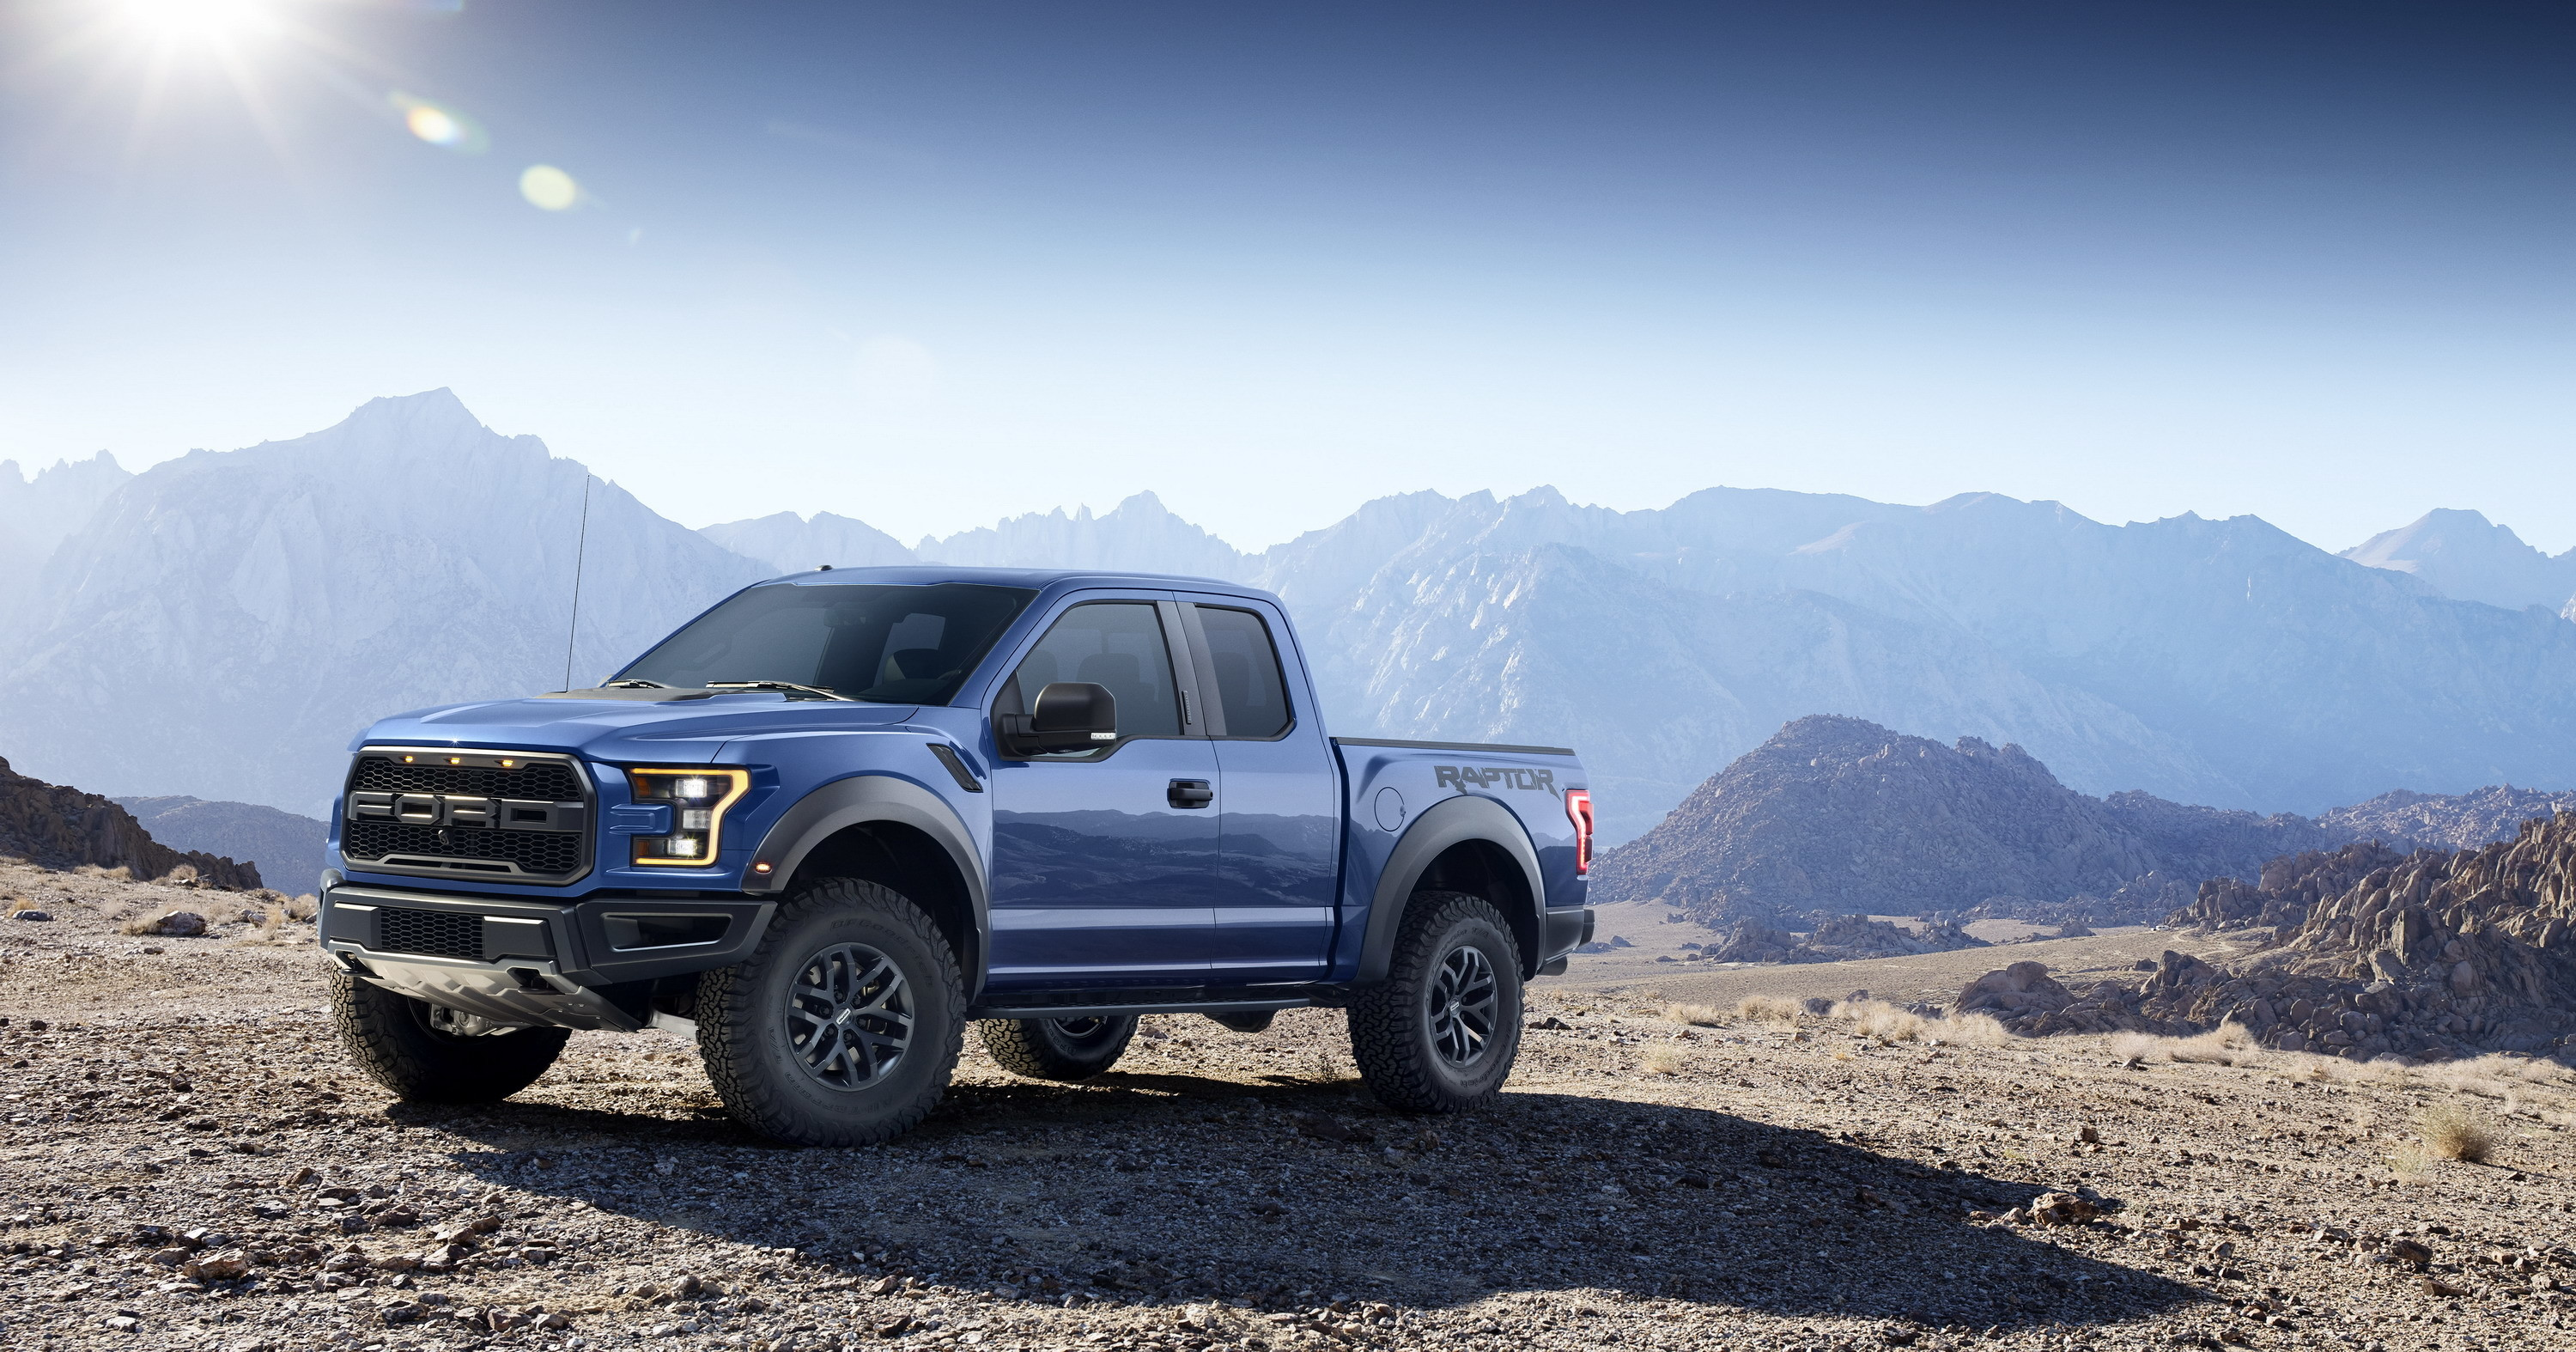 3000x1574 Wallpaper Of The Day: 2017 Ford F-150 Raptor | Top Speed. »